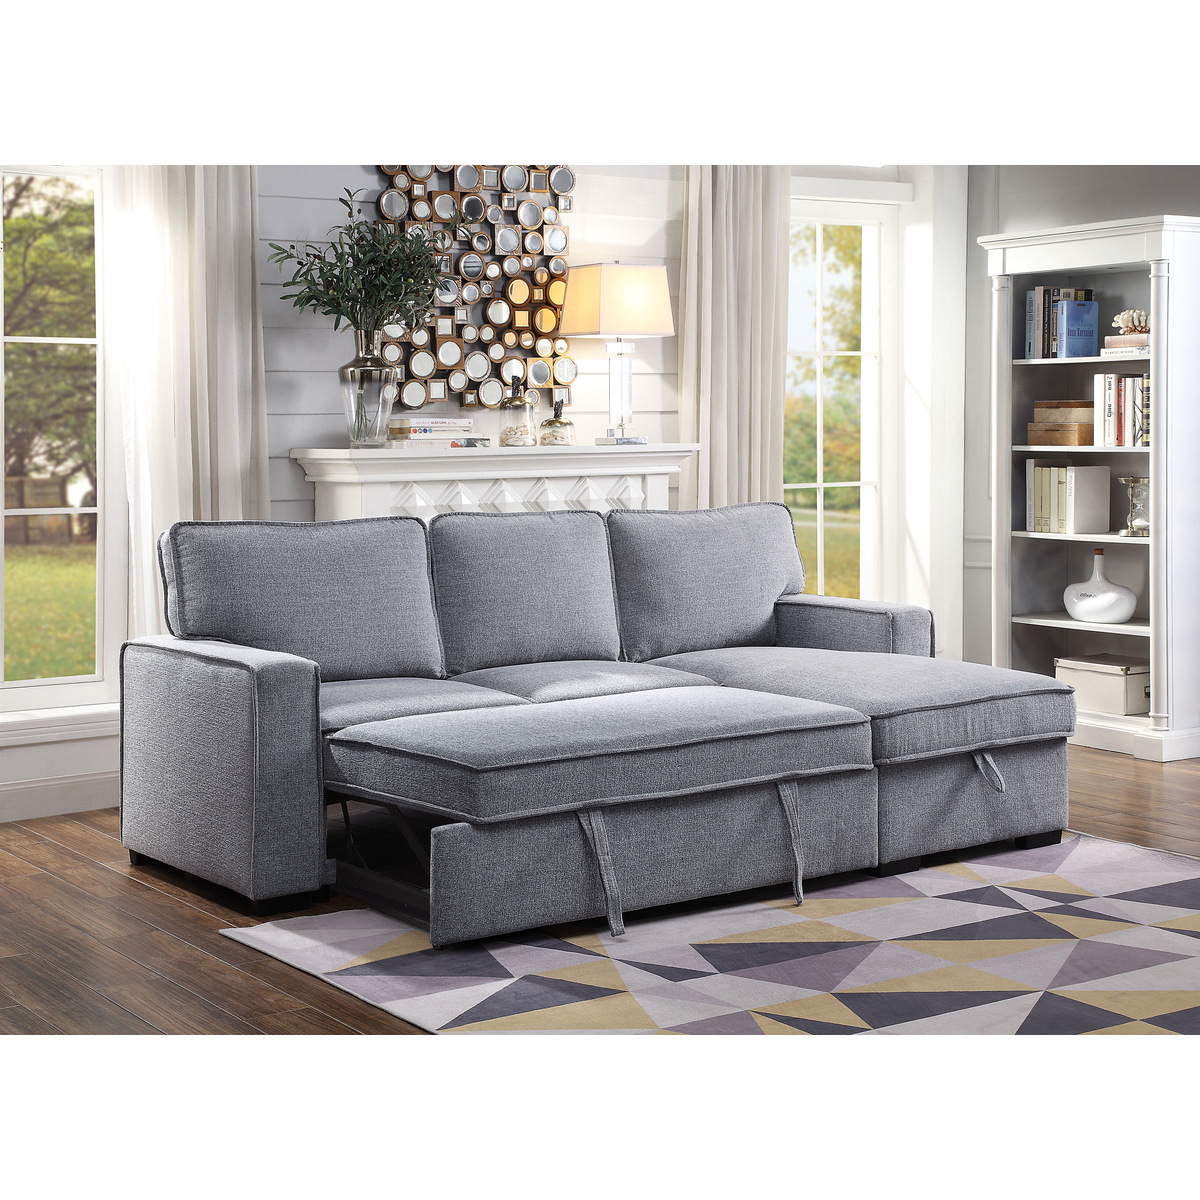 9840GYSS 2pc Sectional with Pull out bed and Hidden Storage